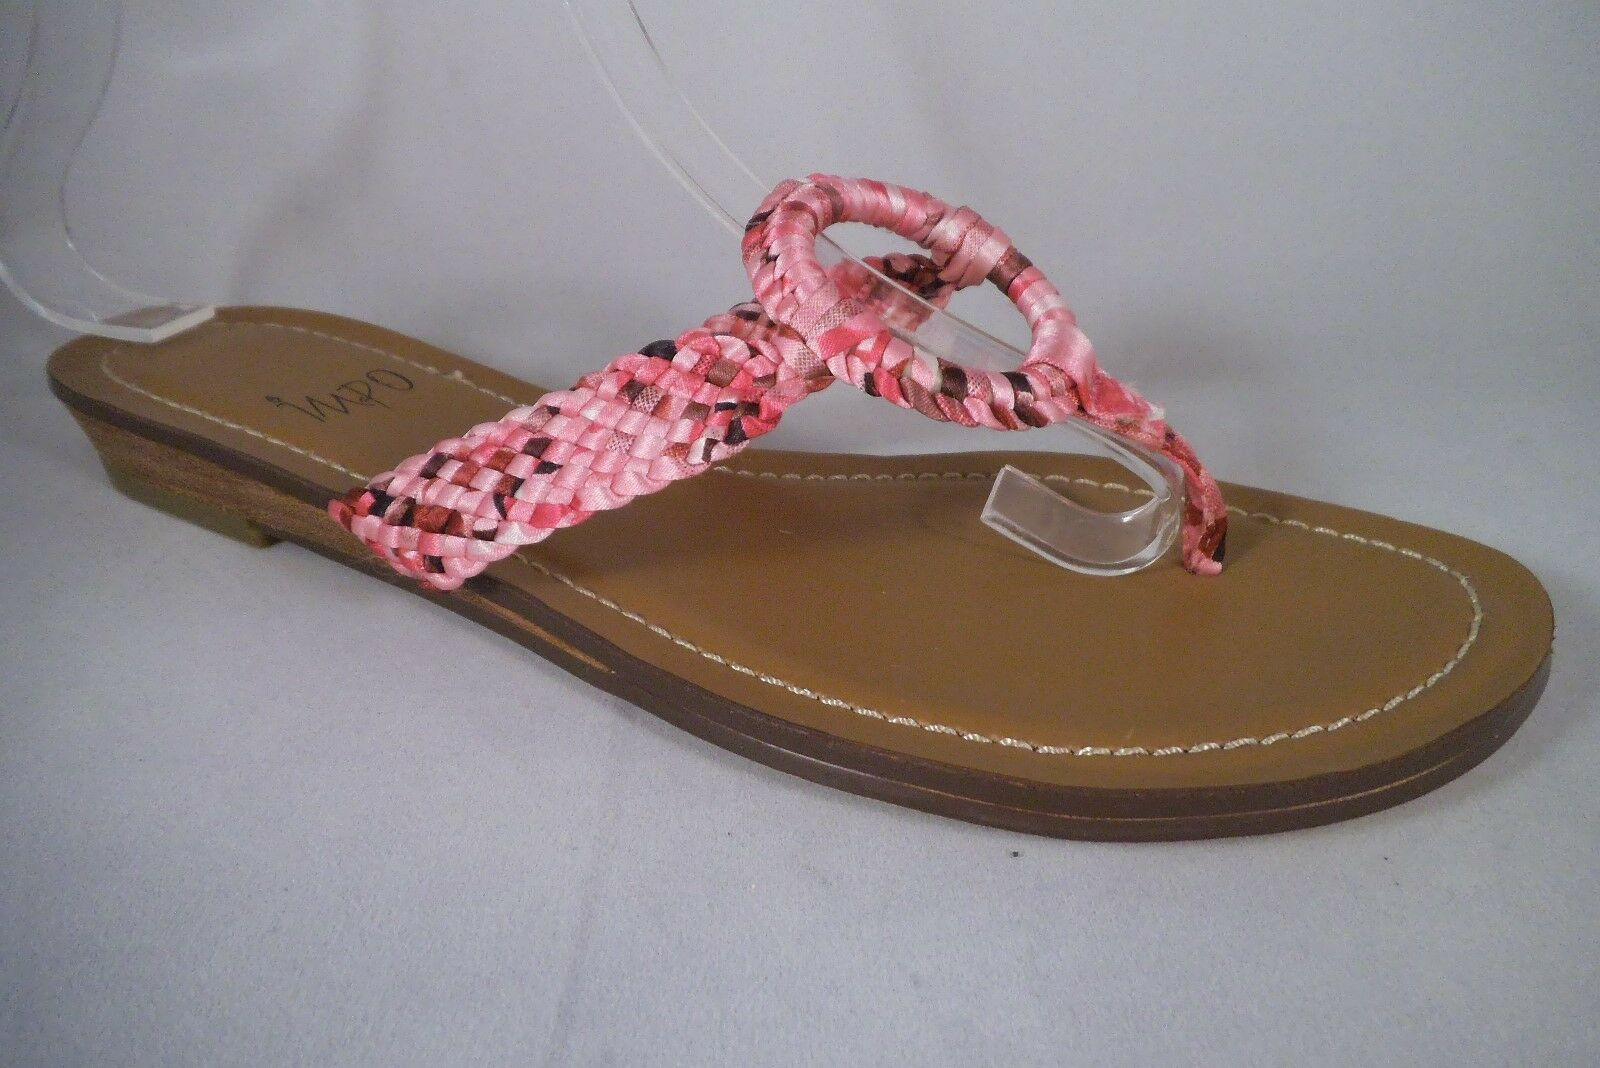 NEW IMPO  ABRIL  THONG SANDALS MULTI Coloreee rosa FABRIC WOVEN STRAPS NON SKID BAS